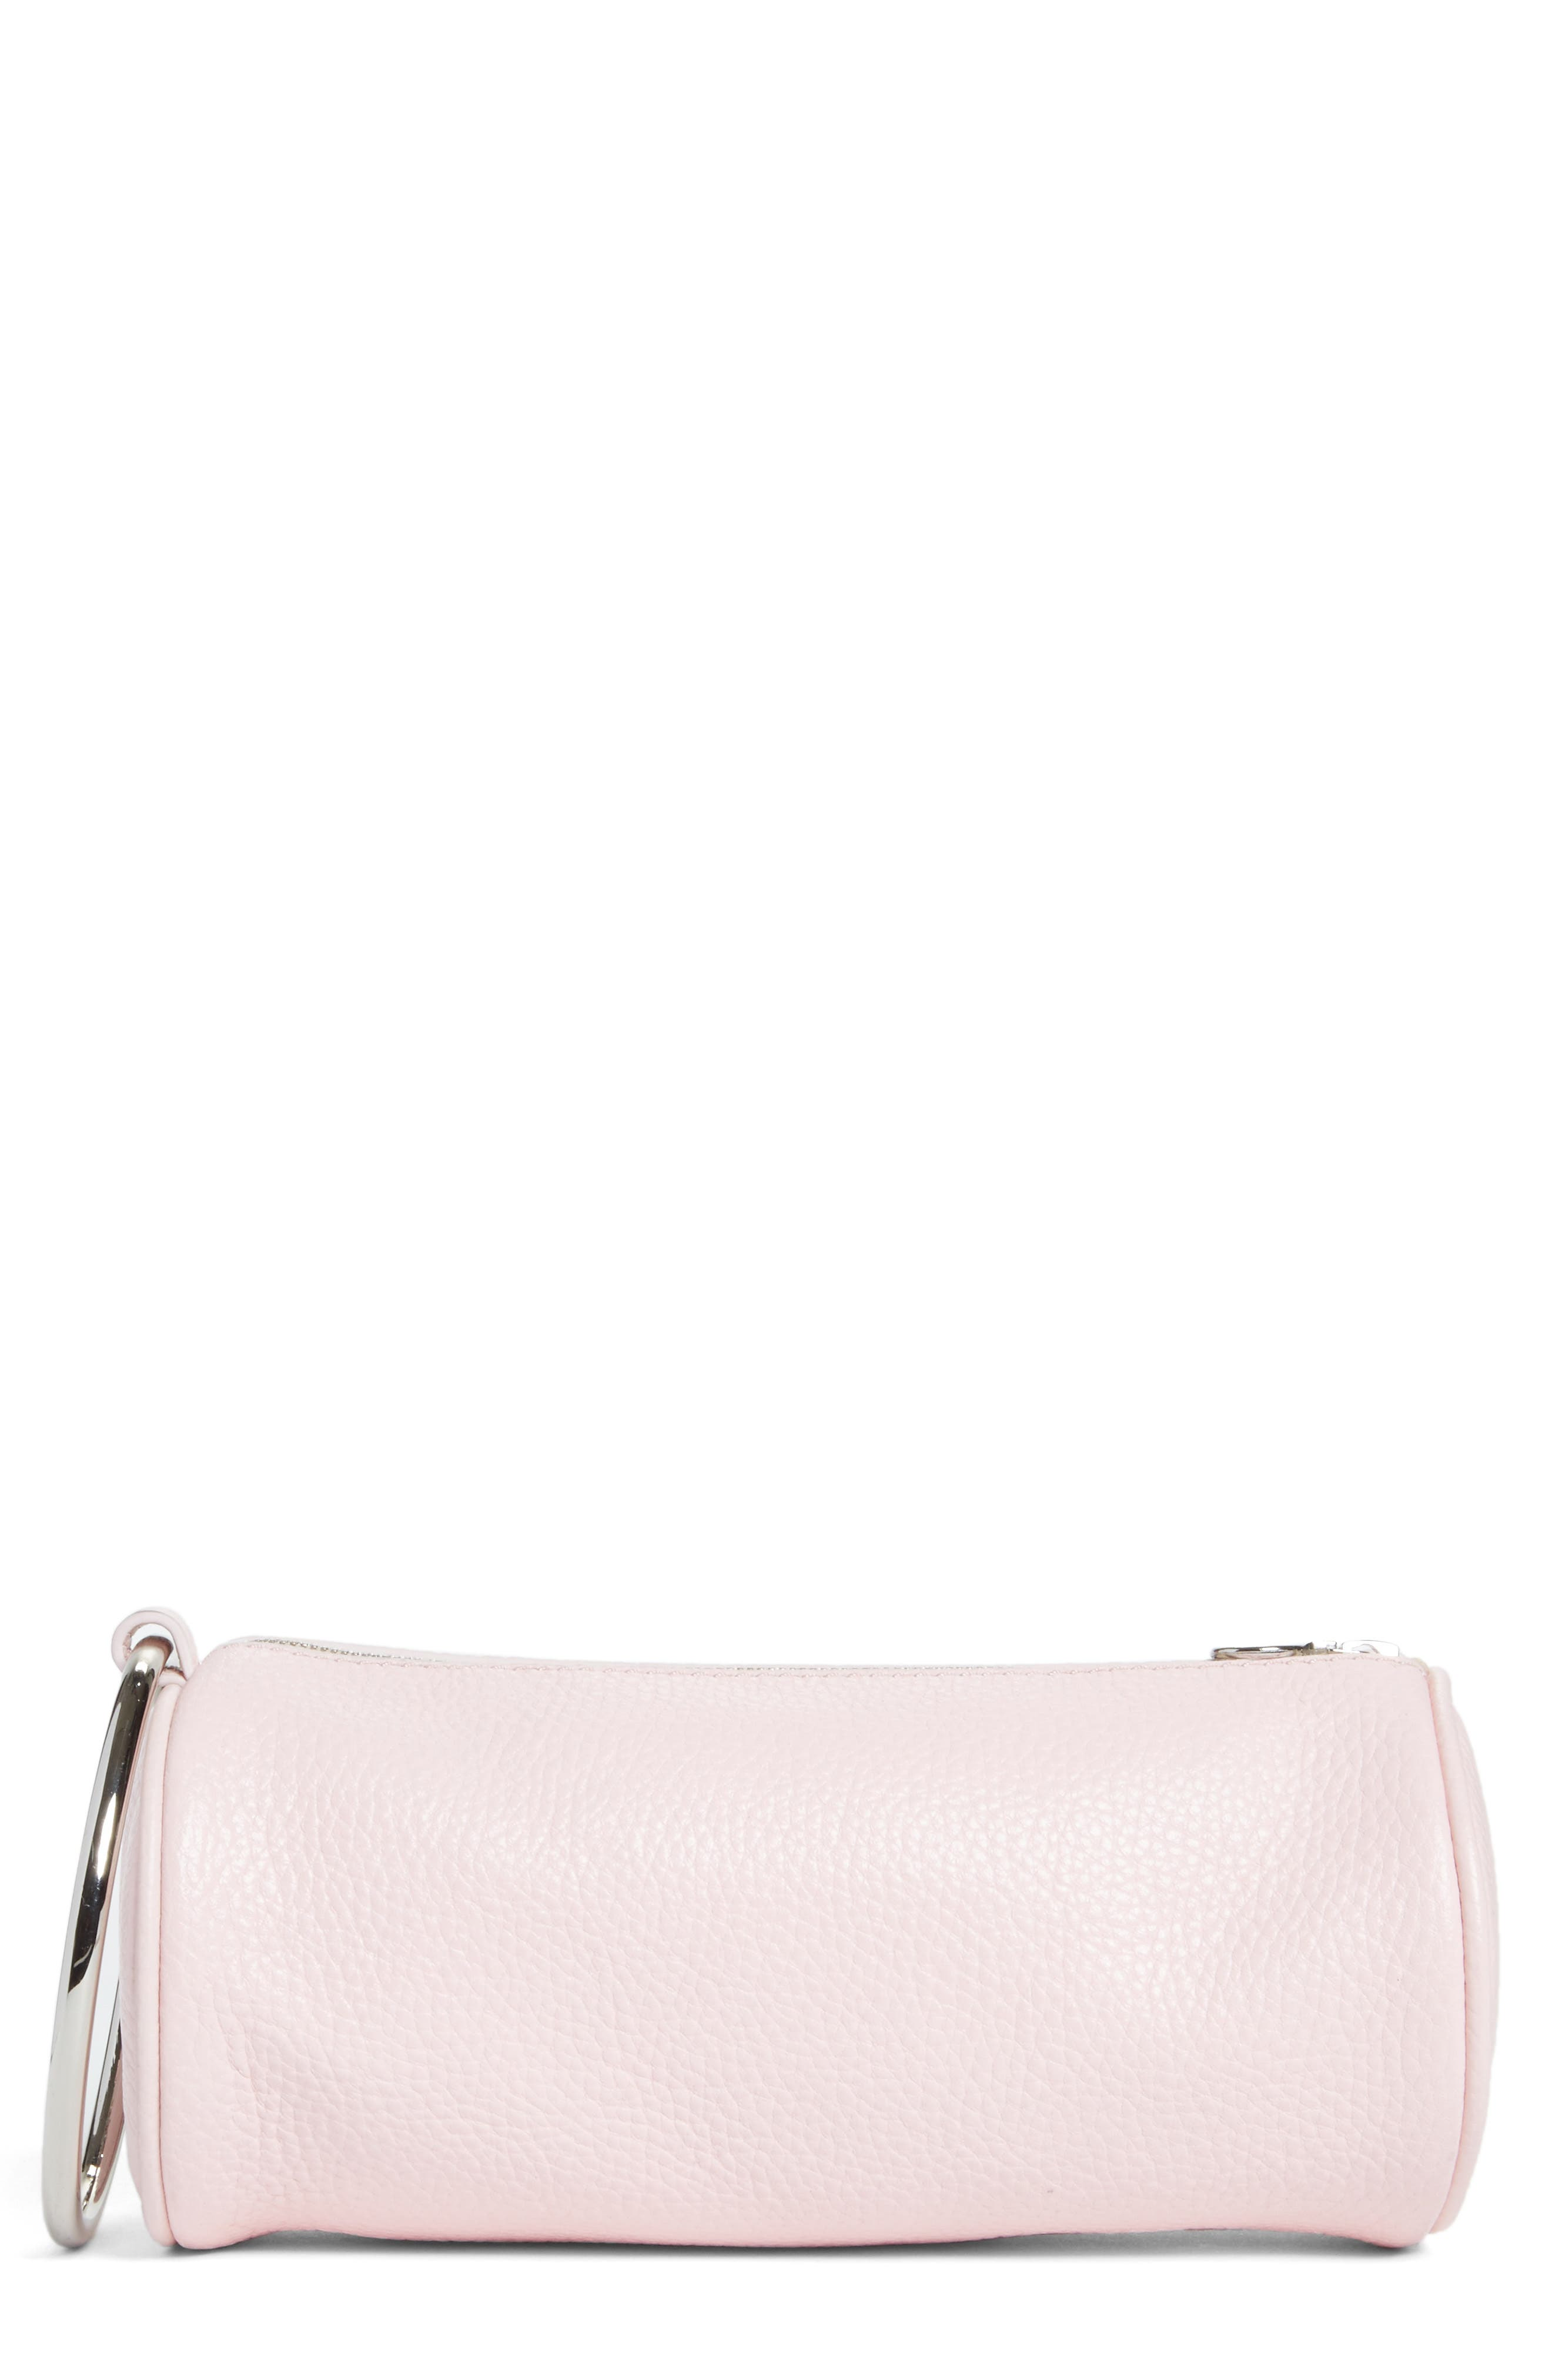 Pebbled Leather Duffel Wristlet Clutch,                         Main,                         color, Blush Pink